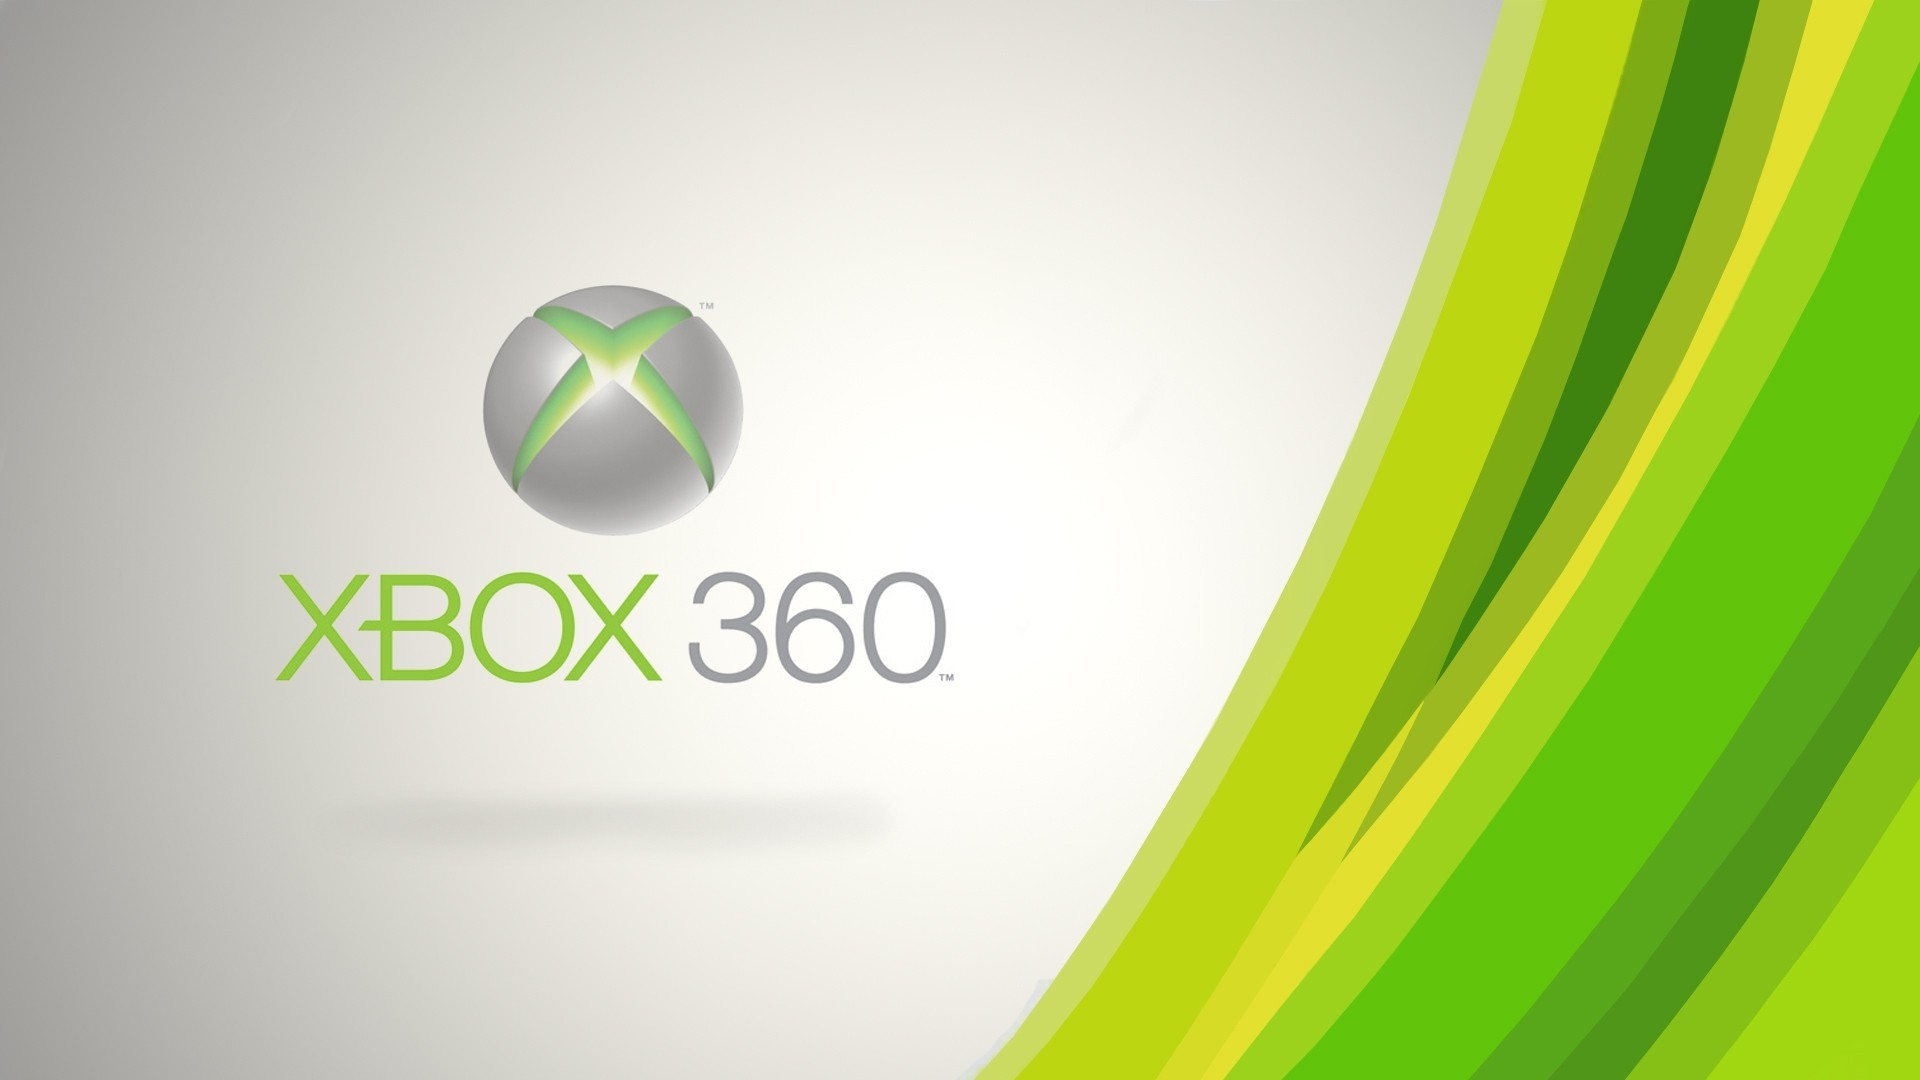 Xbox 360 Wallpaper HD (64+ images)